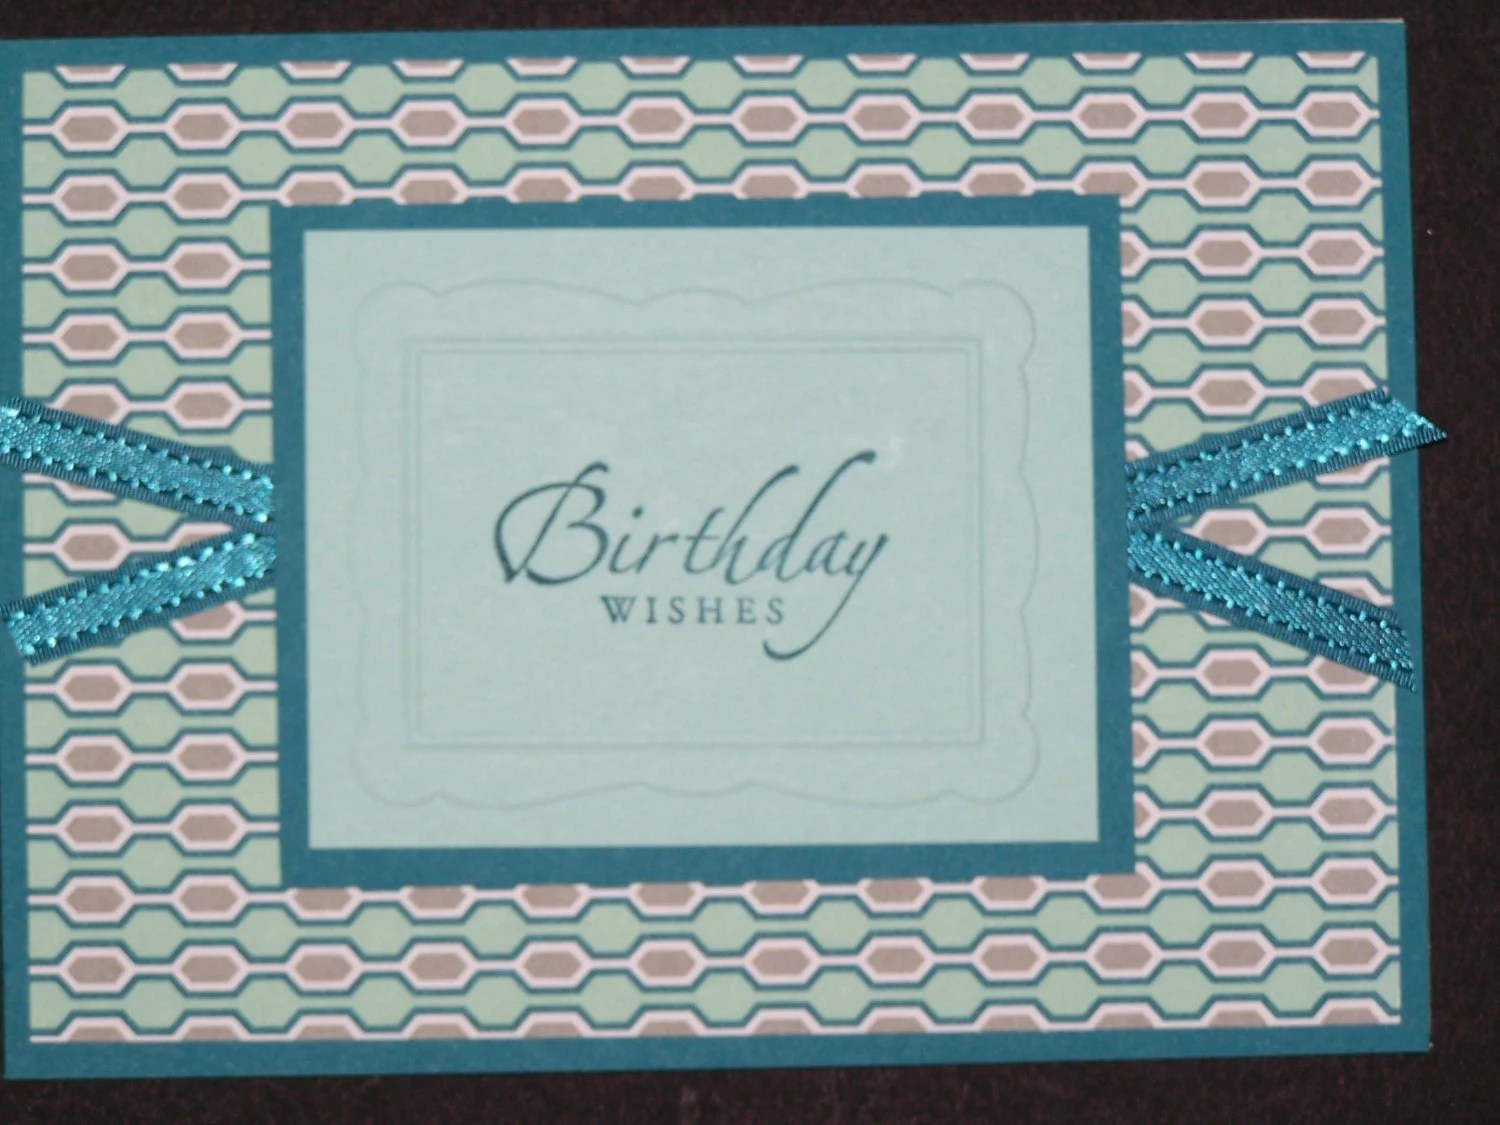 Stampin Up Handmade Greeting Card: Birthday Card, Birthday Wishes, Masculine Card, Birthday Card for Man,Turquoise